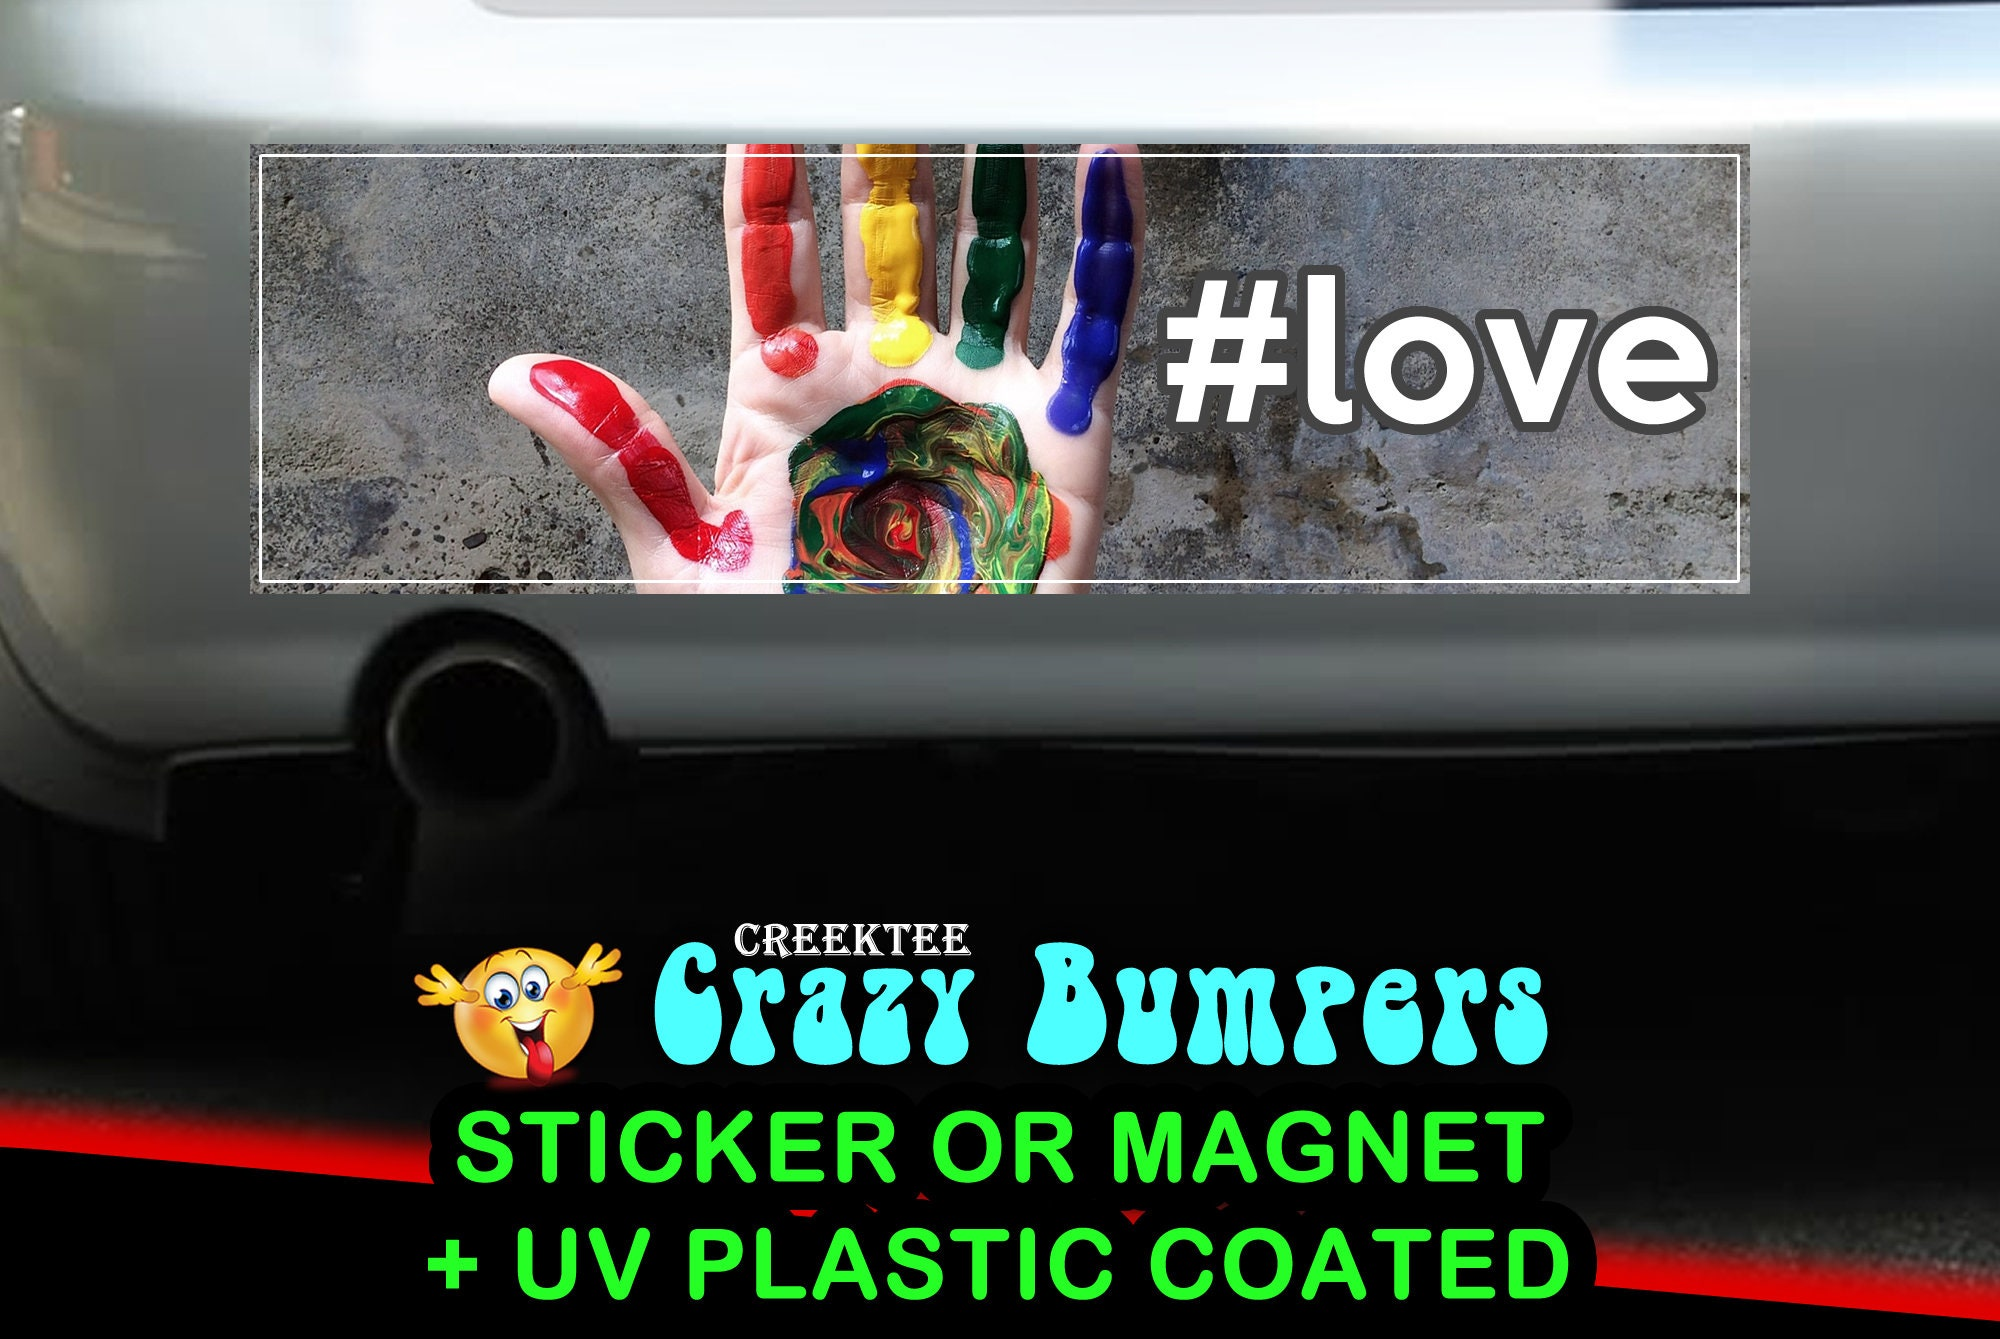 CAD$7.99 - Pride Rainbow Love 10 x 3 Bumper Sticker or Magnetic Bumper Sticker Available